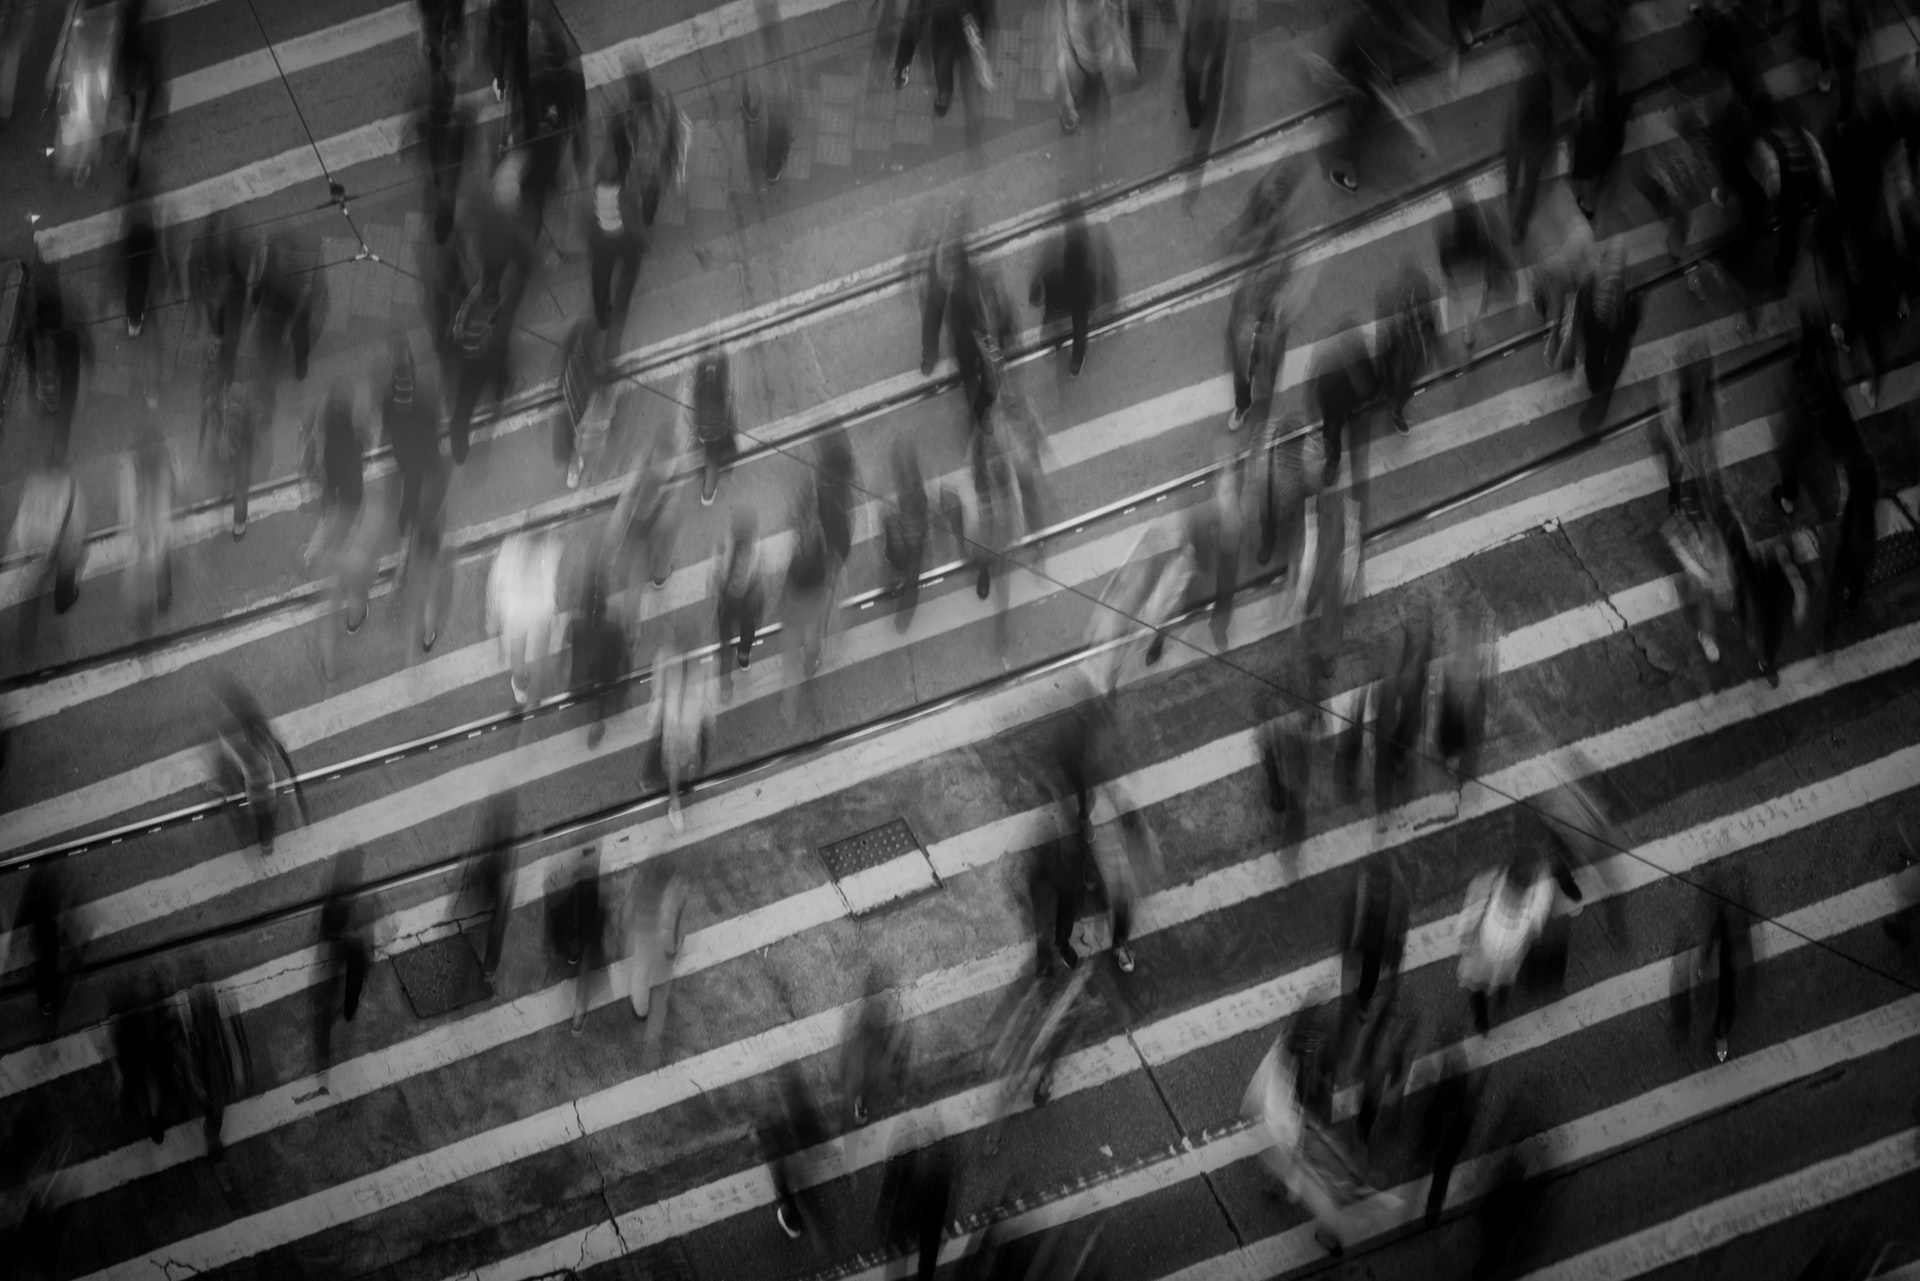 Blurred image of a crowd of people walking across the street